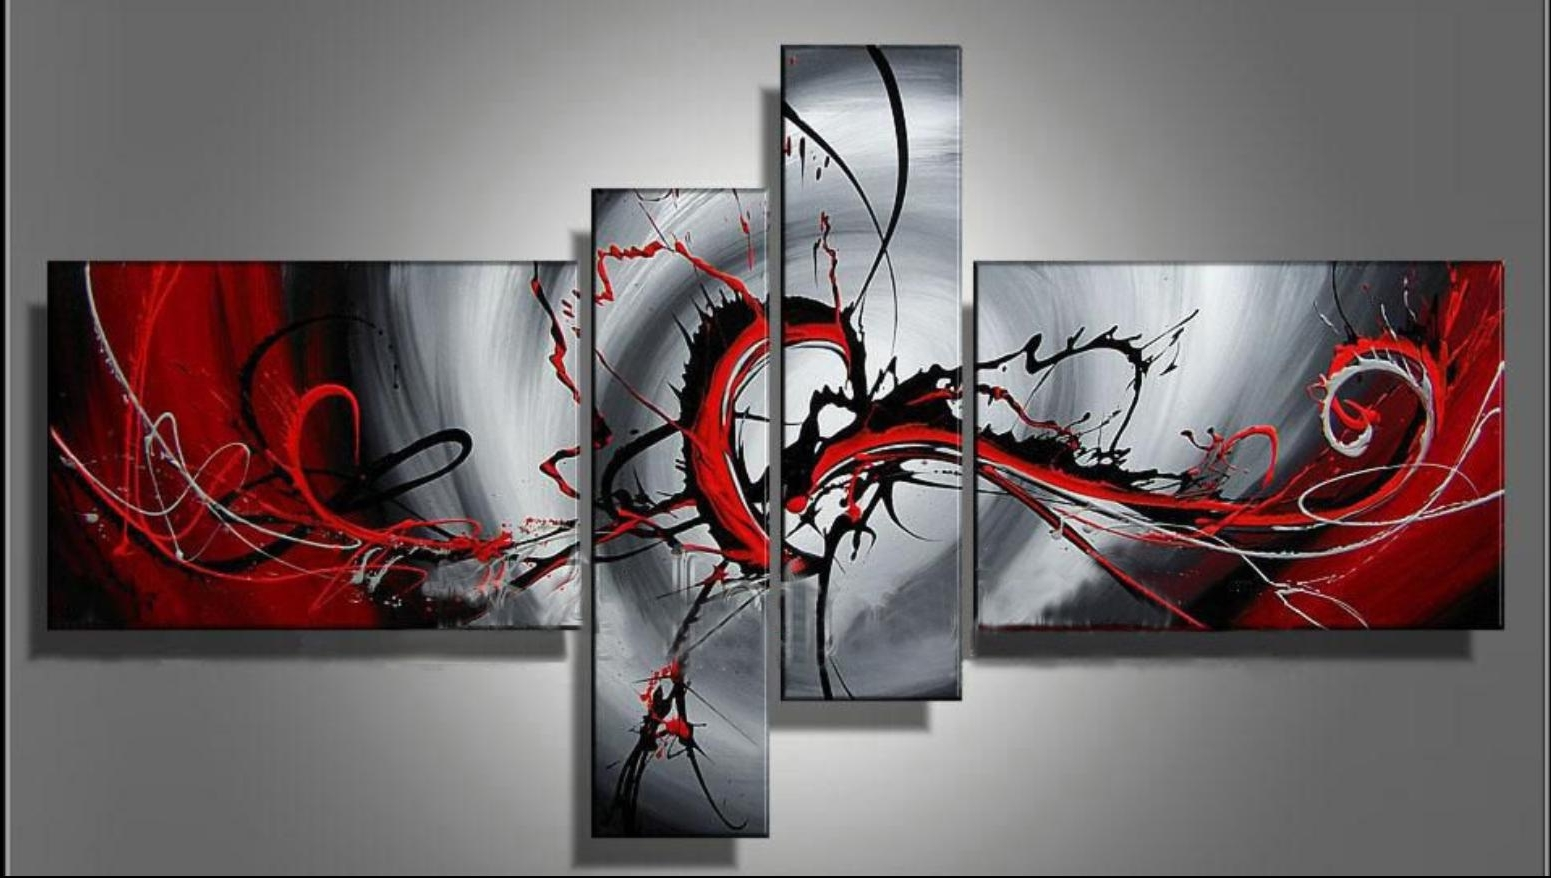 [%100% Hand Painted Classic Black & Red Modern Abstract Oil Painting With Regard To Latest Modern Abstract Oil Painting Wall Art|Modern Abstract Oil Painting Wall Art With Regard To Most Recently Released 100% Hand Painted Classic Black & Red Modern Abstract Oil Painting|Well Known Modern Abstract Oil Painting Wall Art Intended For 100% Hand Painted Classic Black & Red Modern Abstract Oil Painting|Newest 100% Hand Painted Classic Black & Red Modern Abstract Oil Painting Inside Modern Abstract Oil Painting Wall Art%] (View 1 of 15)